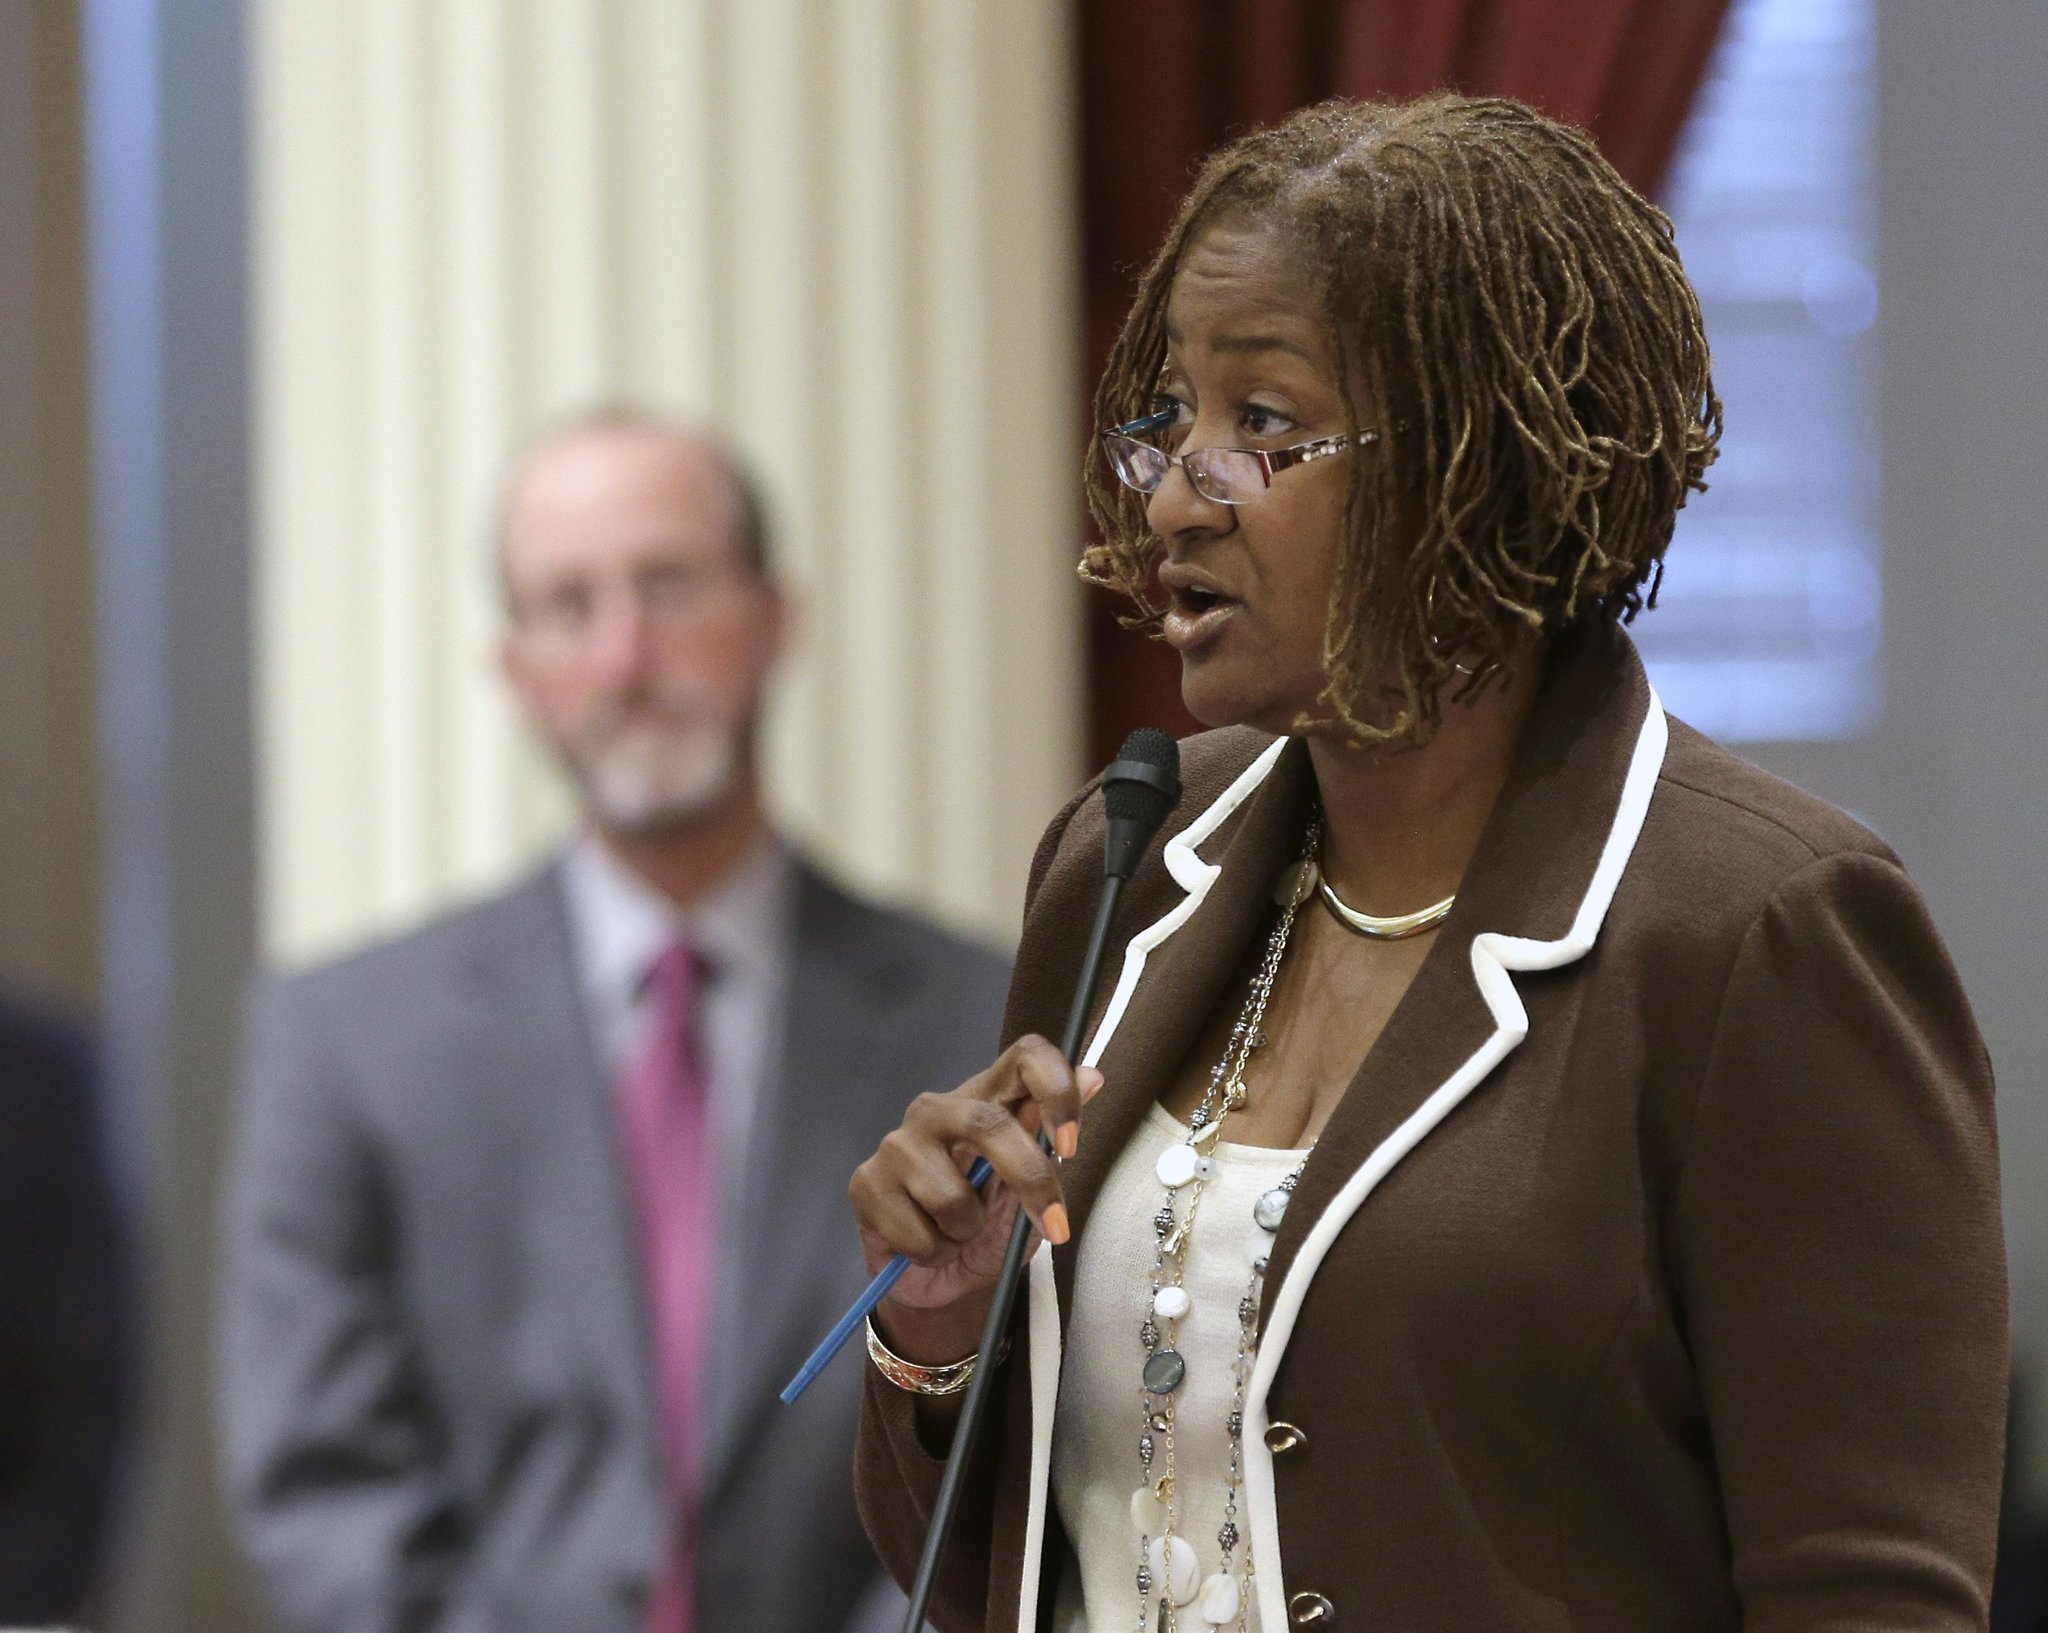 State Sen. Holly Mitchell (D-Los Angeles) criticized the 2015 budget before breaking ranks to abstain on the vote.